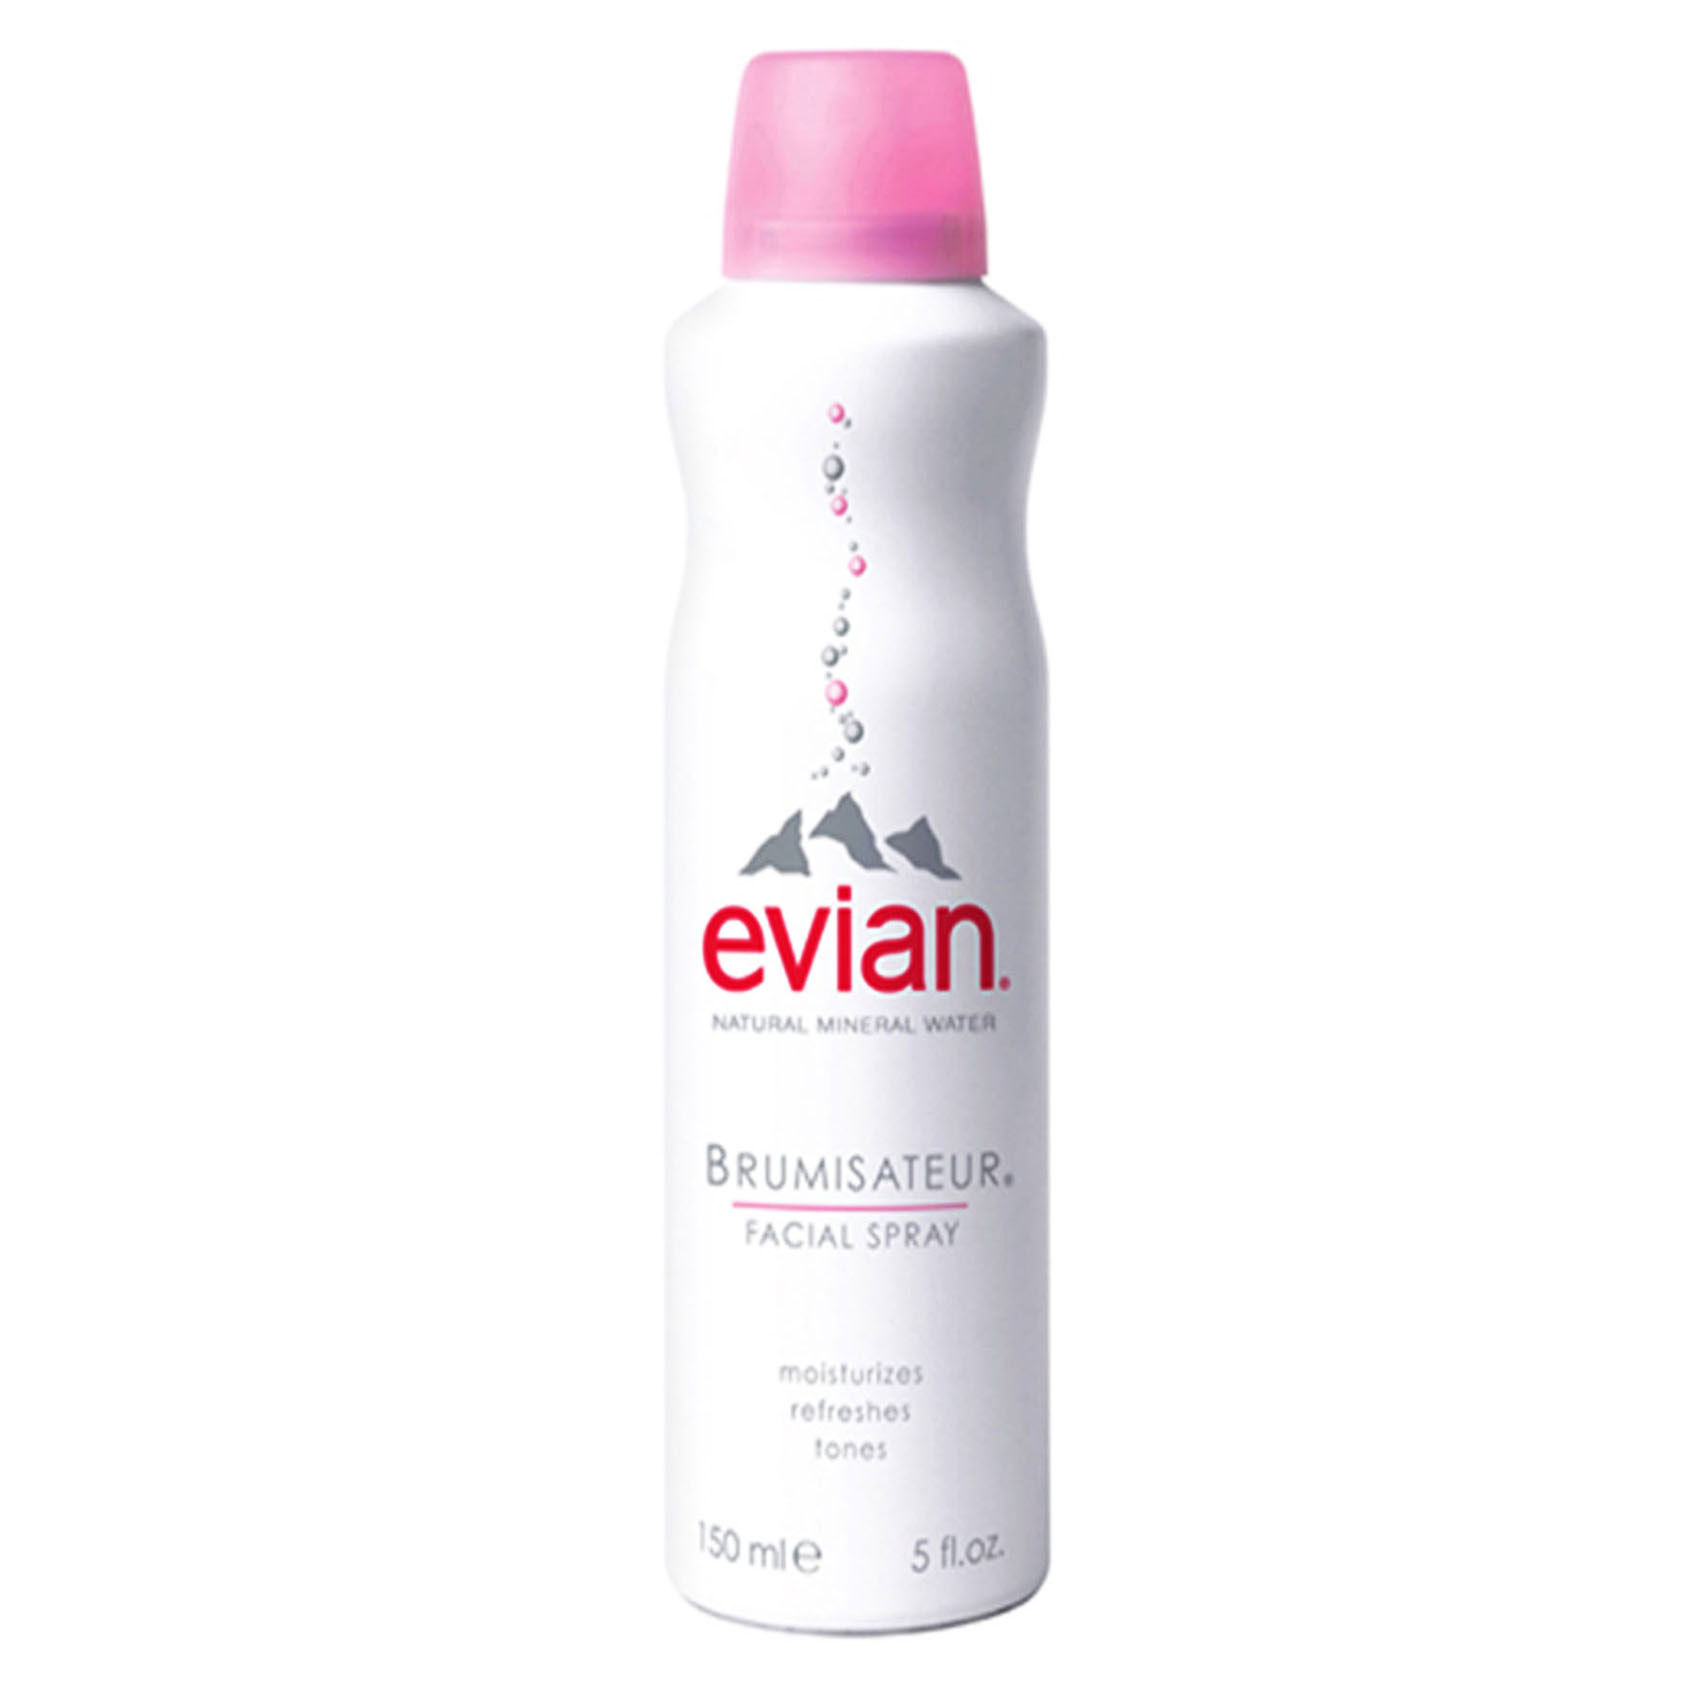 EVIAN SKIN CARE ATOMIZER 150ML